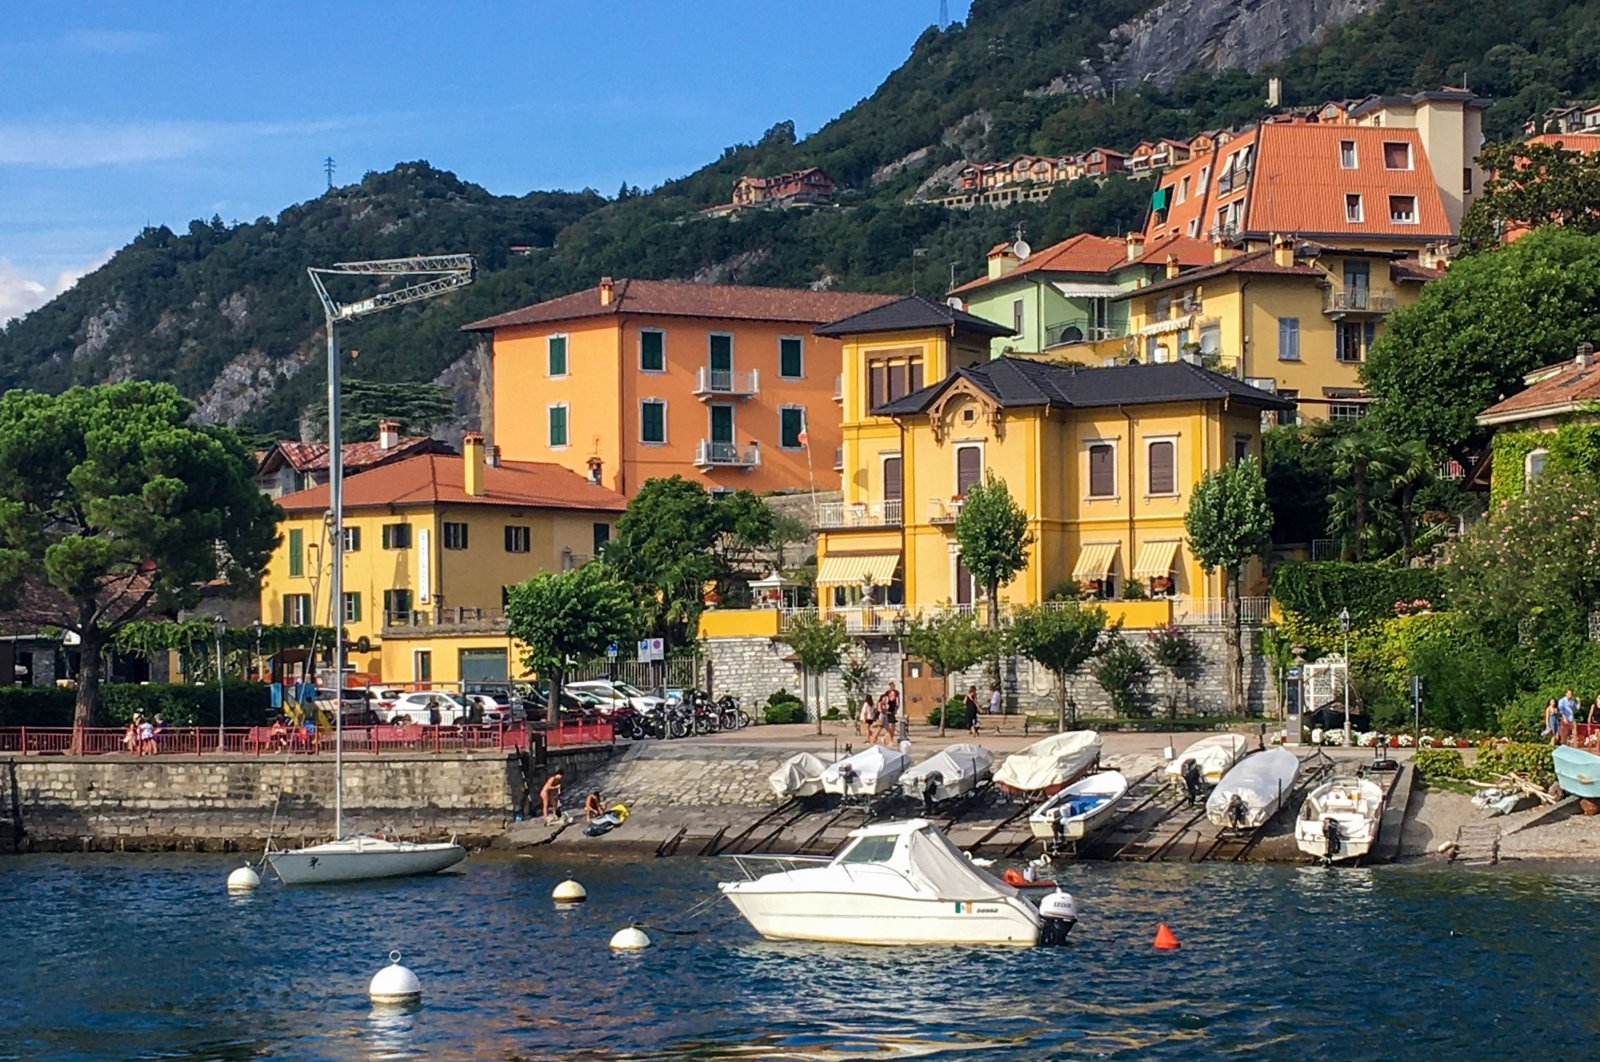 Boats and houses on Lake Como in the city of Varenna, Lombardy, Italy, Aug. 19, 2020. (AFP Photo)